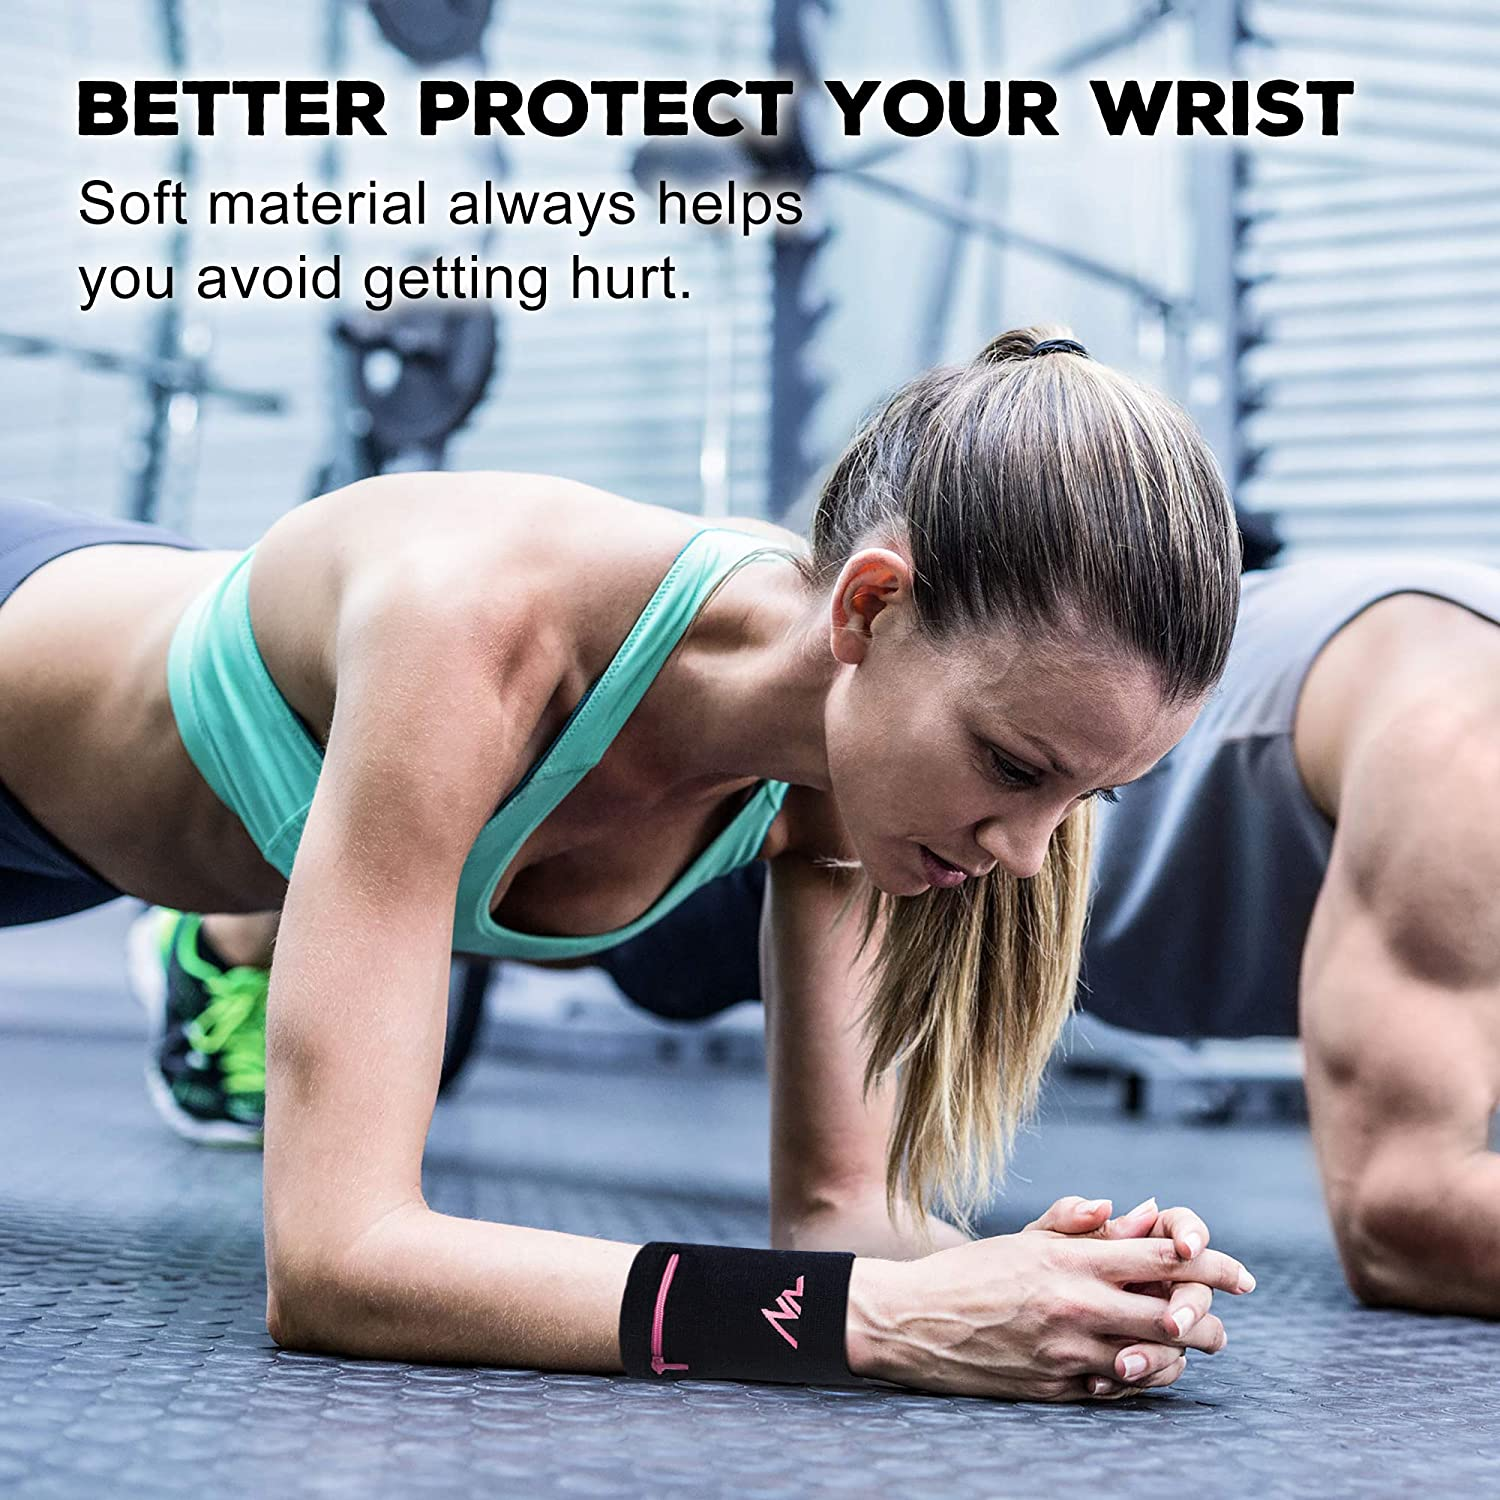 Hiking with Zipper for Running Cross-Fit and More Tennis NEWZILL Wrist Wallet Walking Basketball Wristband